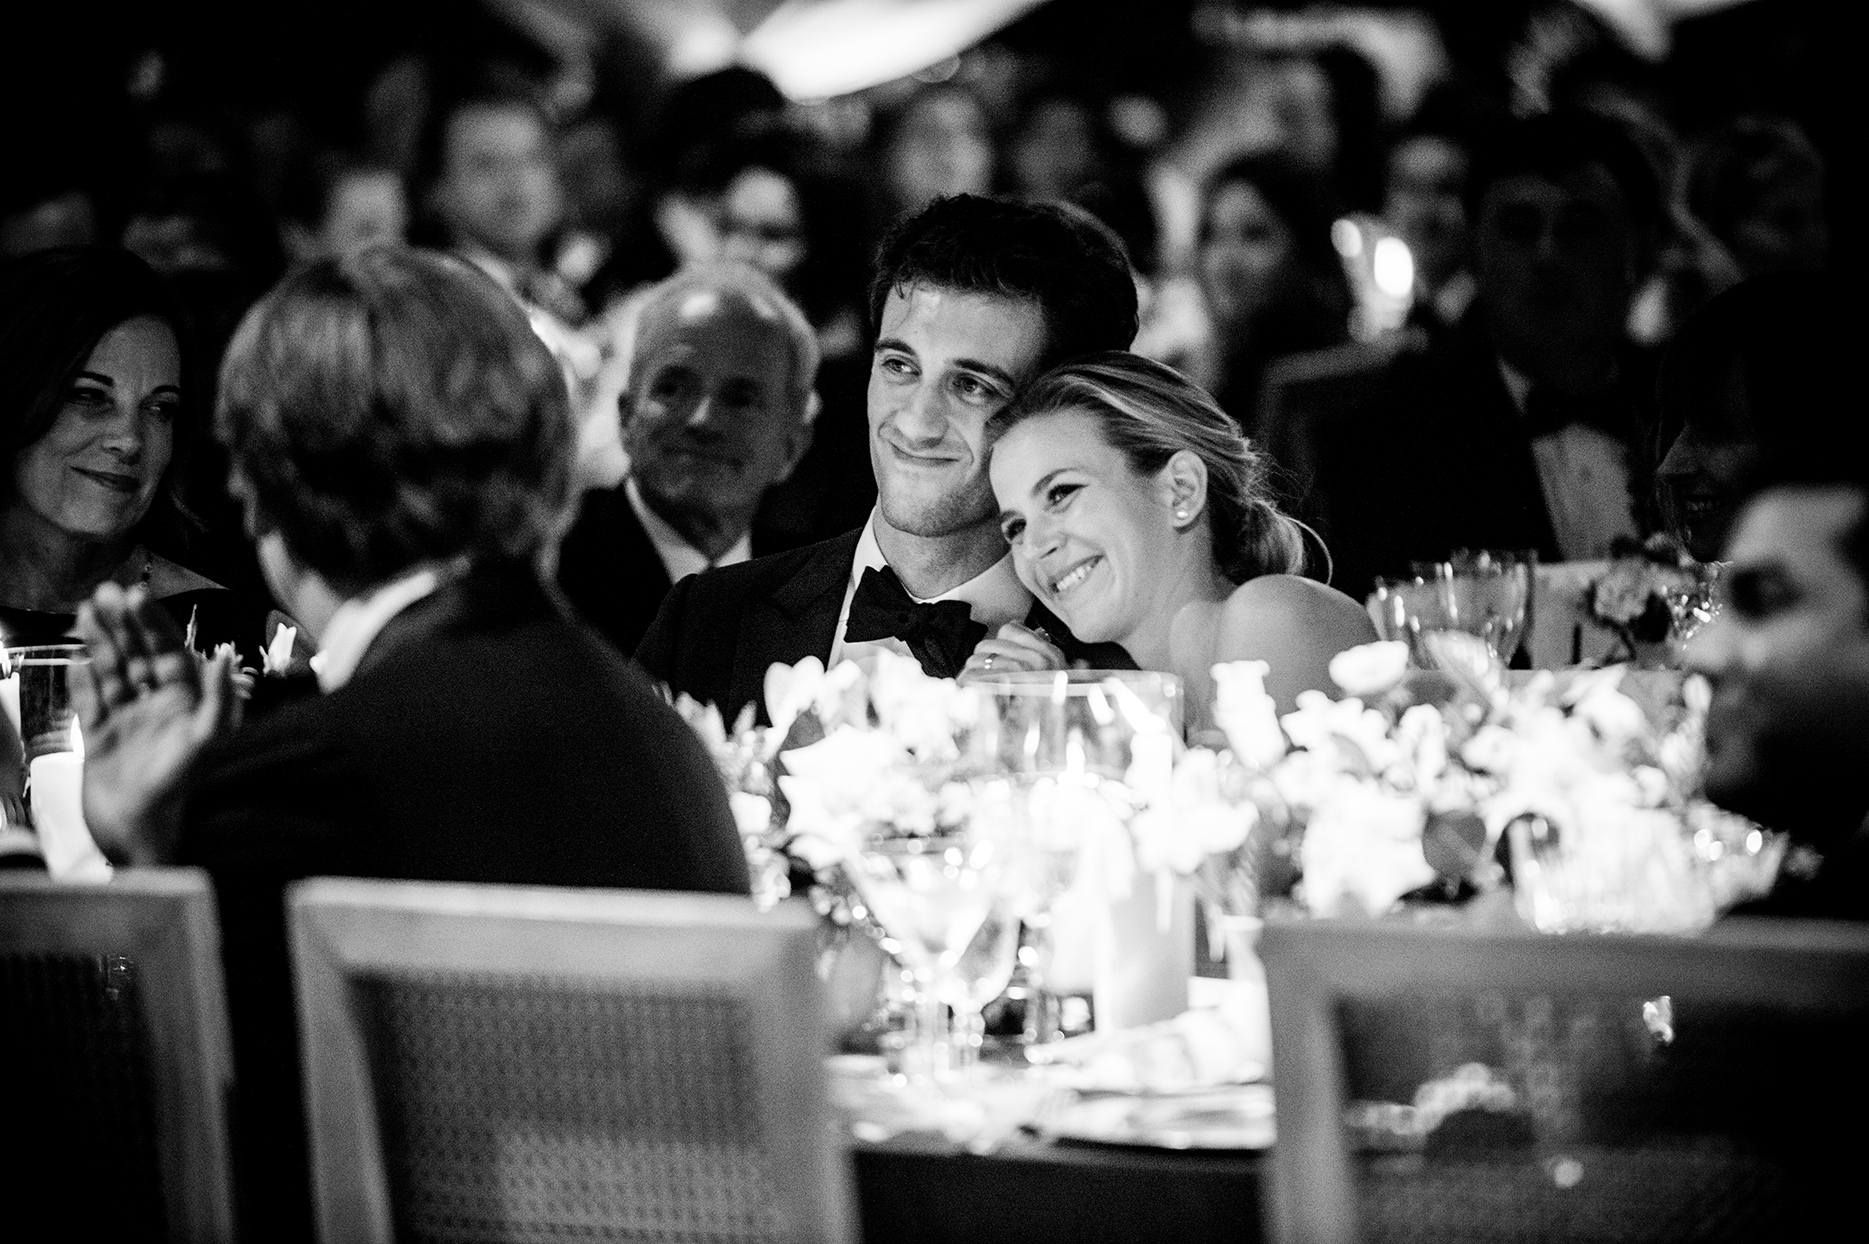 bride and groom sitting together during reception speeches